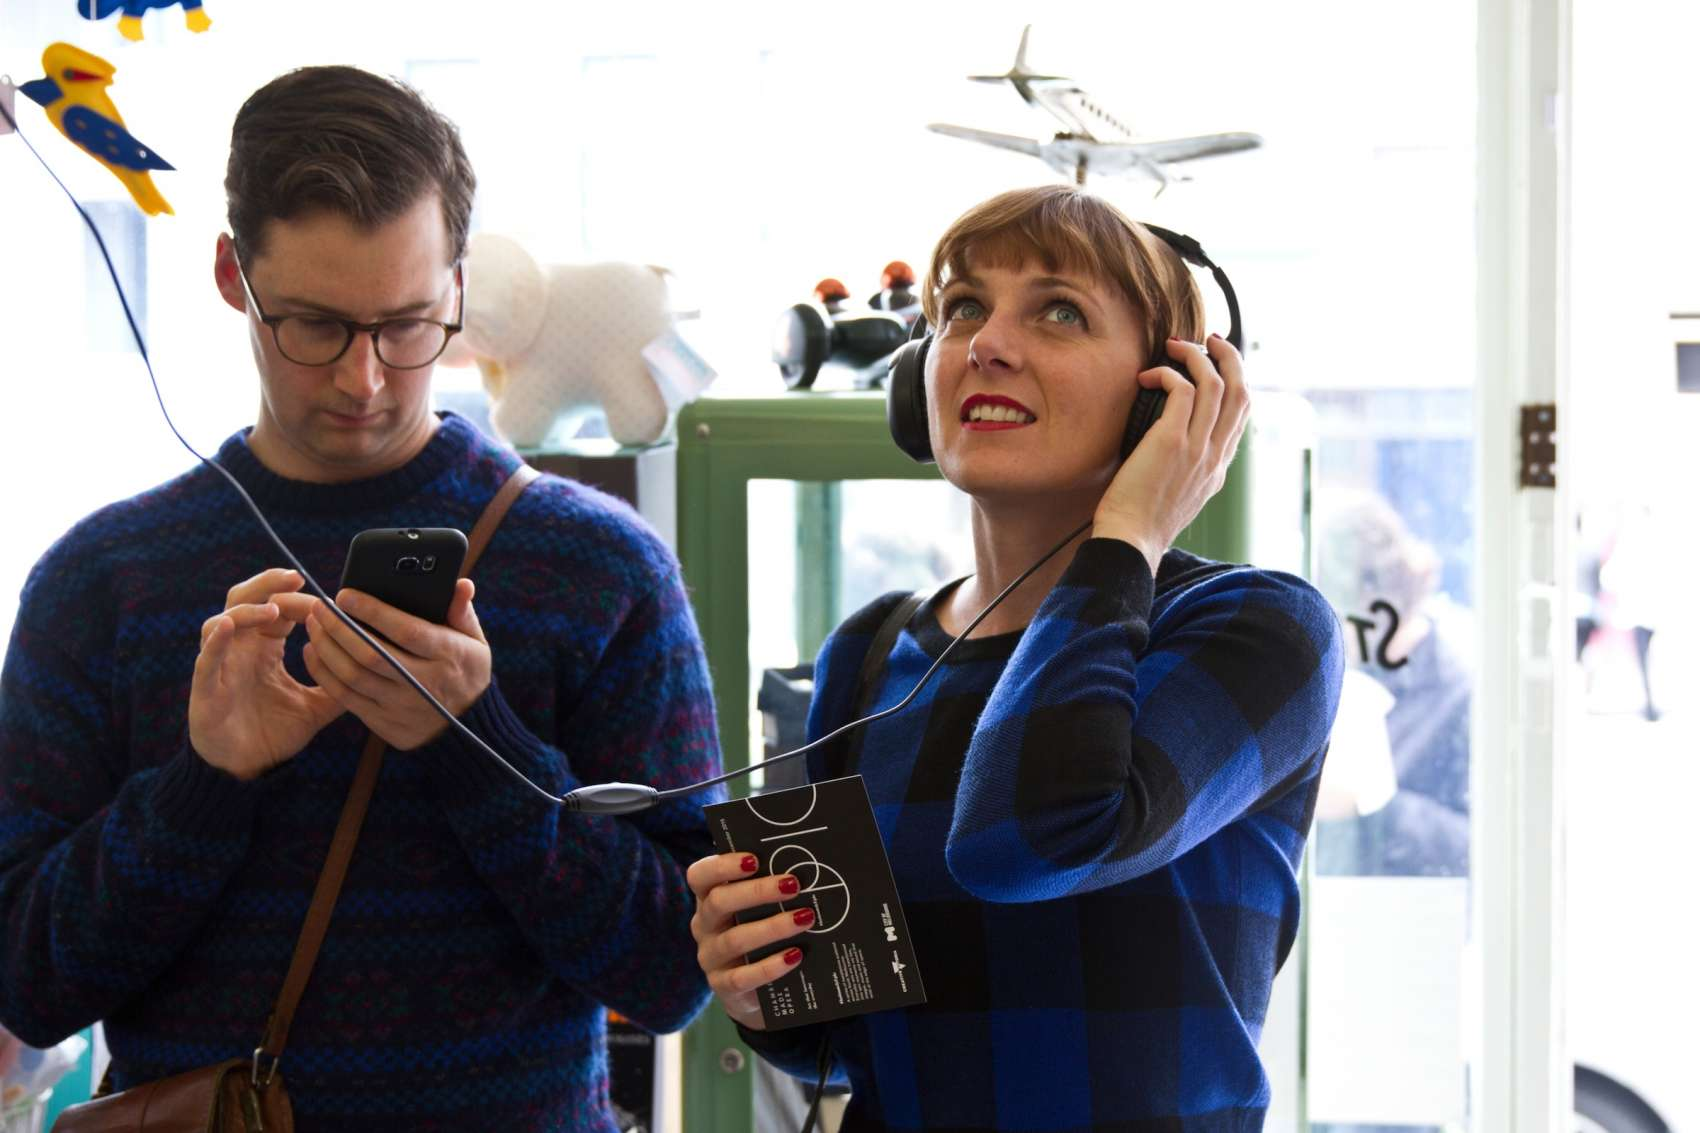 Man checking phone and woman wearing headphones in a toy shop